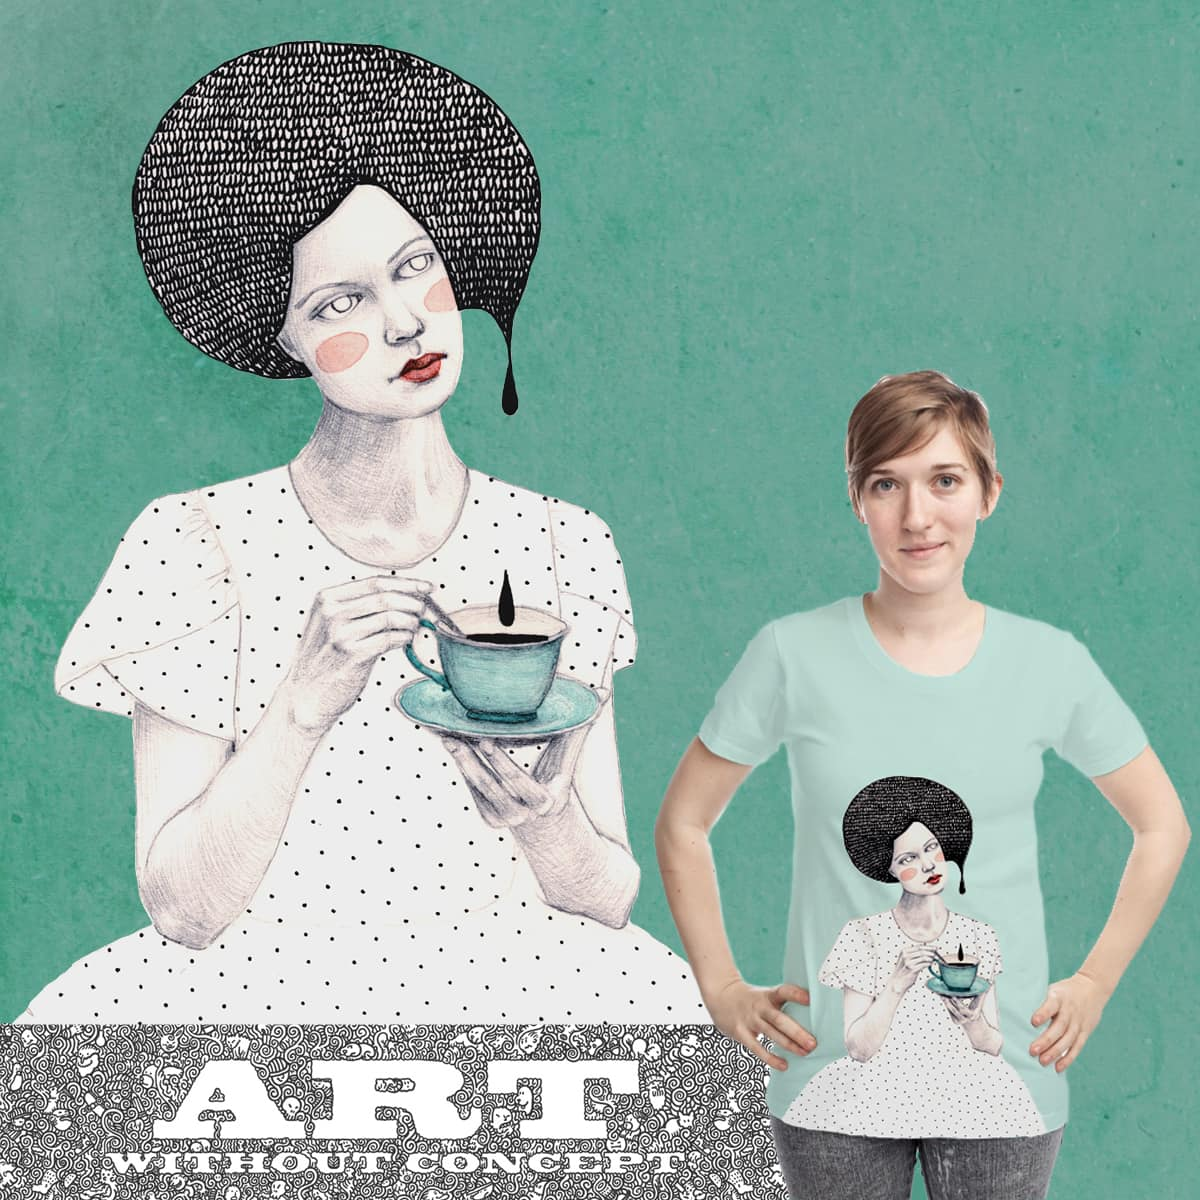 Black Tea by Soffronia on Threadless